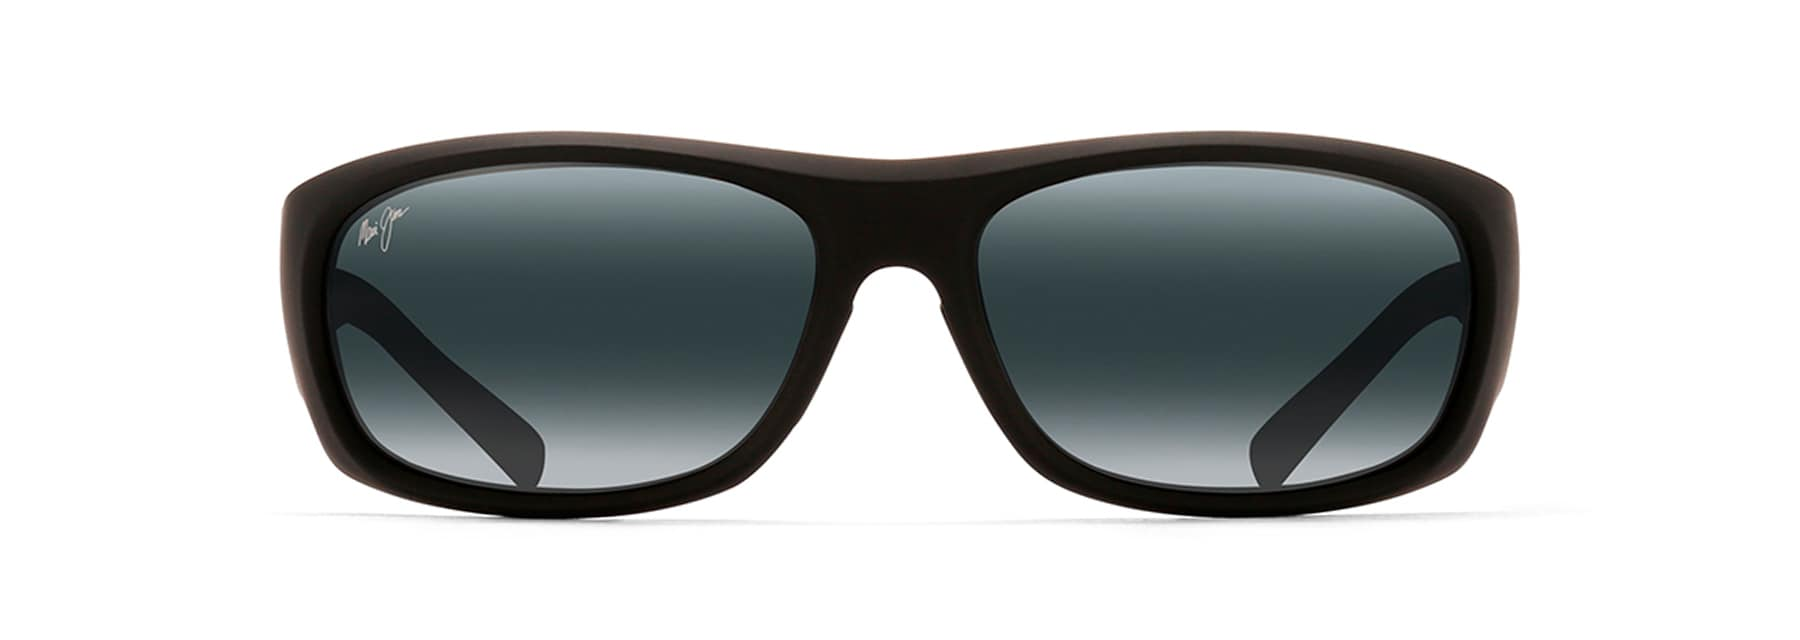 ikaika polarized sunglasses maui jim®matte black rubber ikaika front view